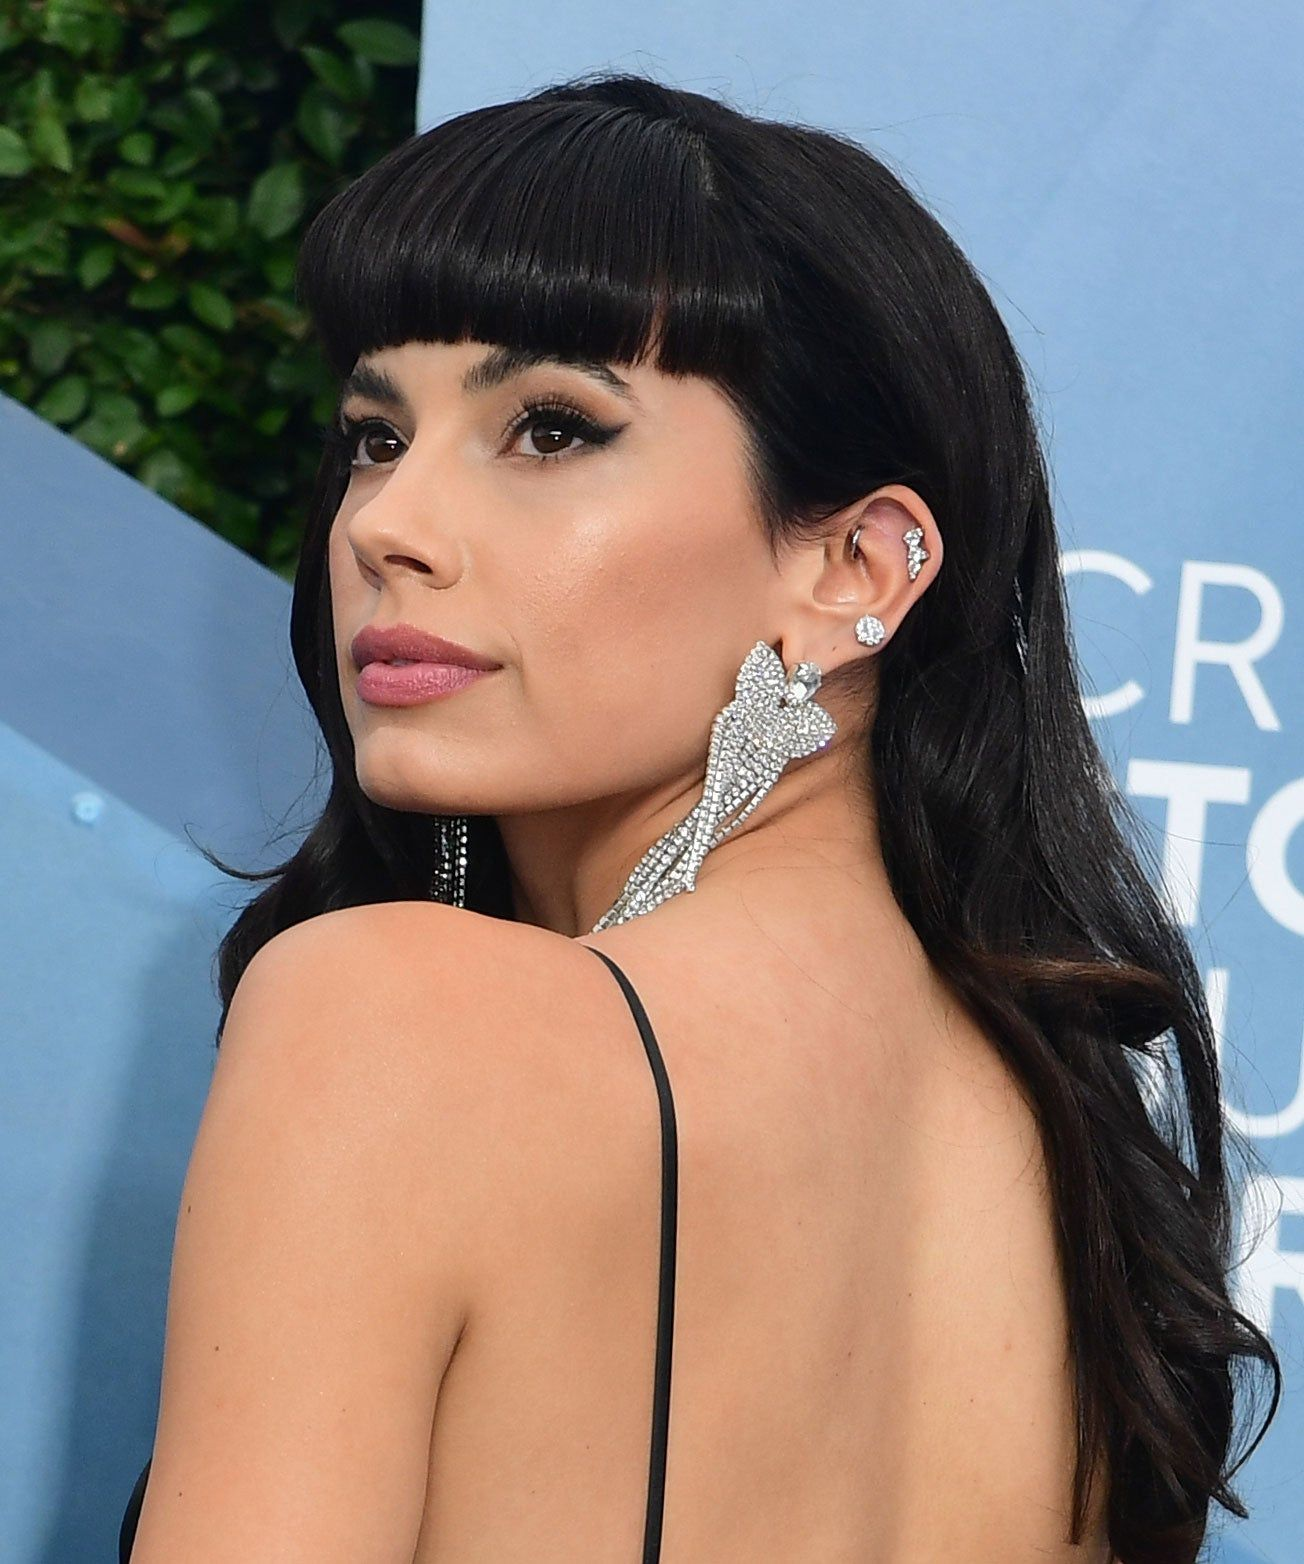 Constellation Piercings Were All Over The SAG Awards Red Carpet